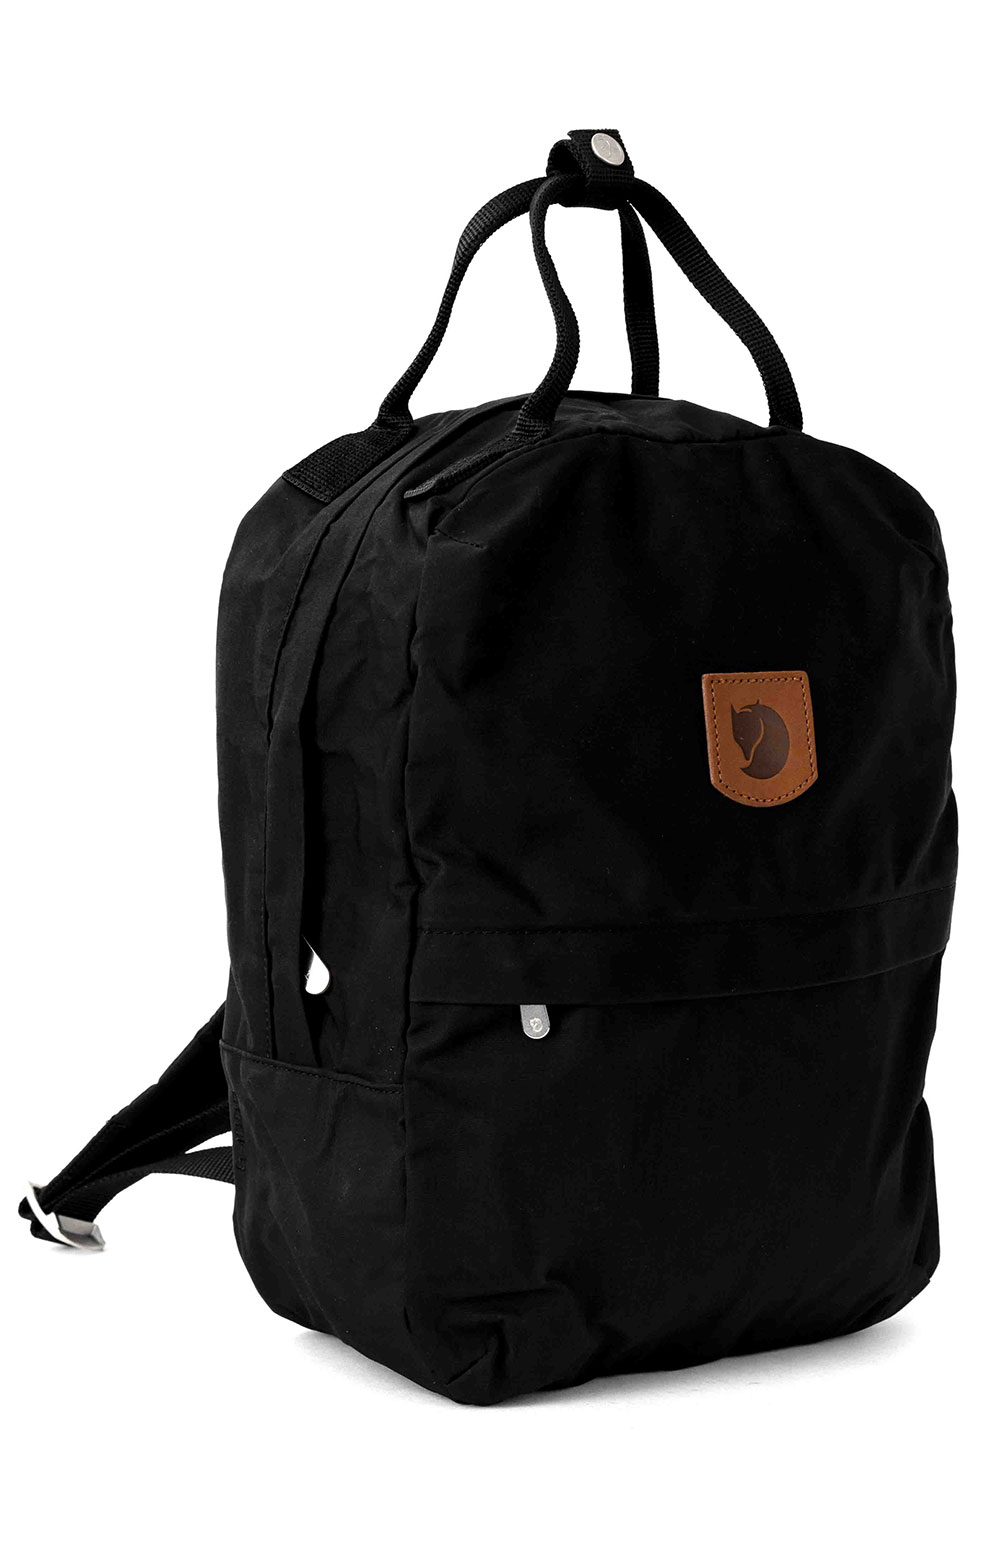 Greenland Zip Backpack - Black 2